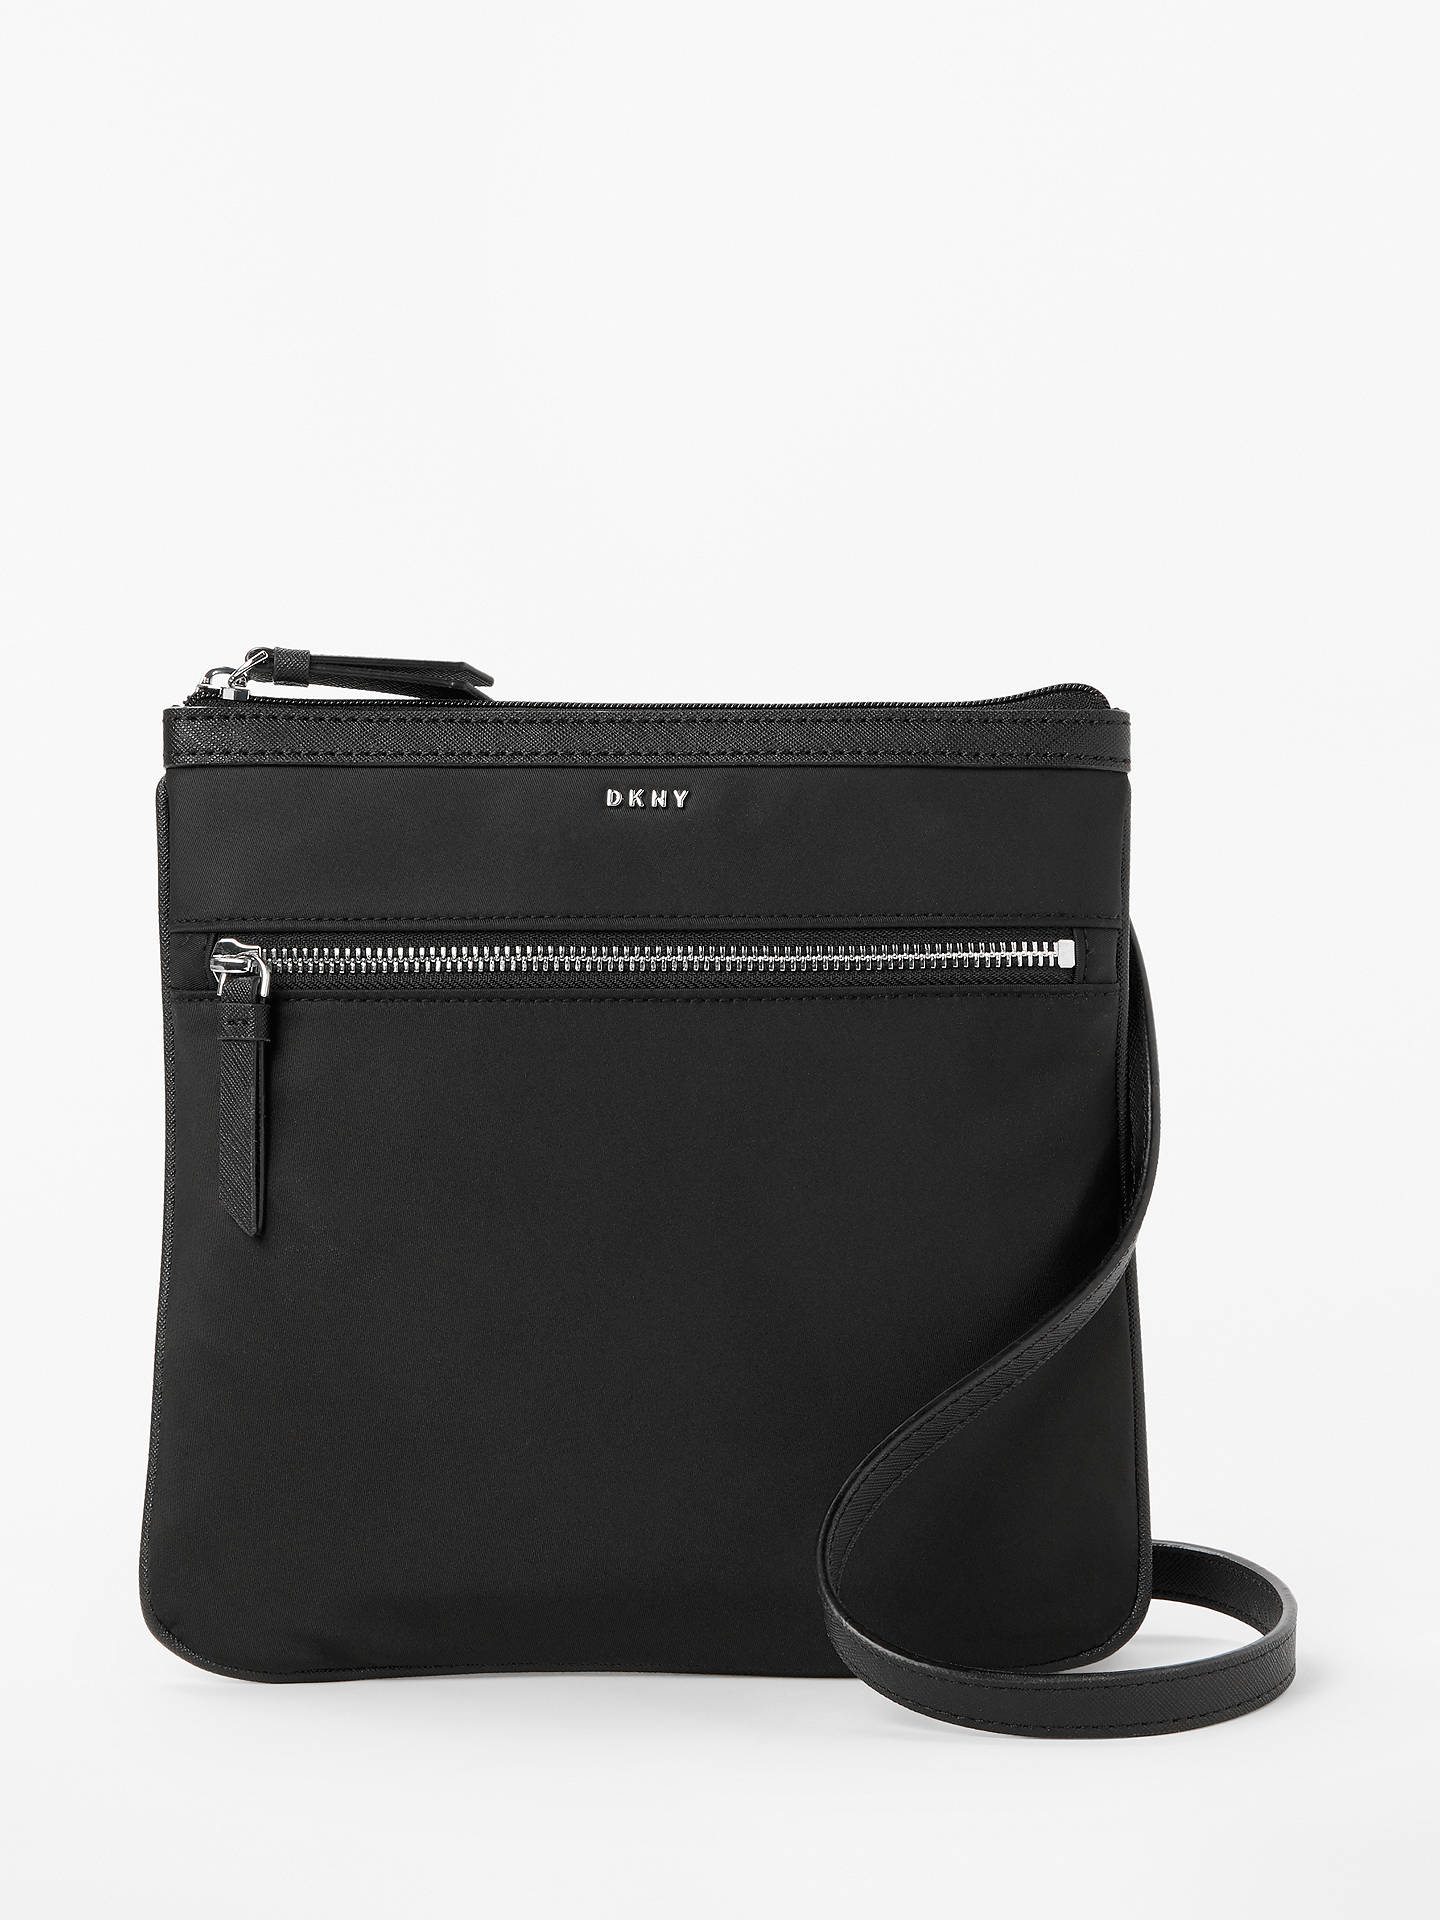 48976568da Buy DKNY Casey Zip Top Cross Body Bag